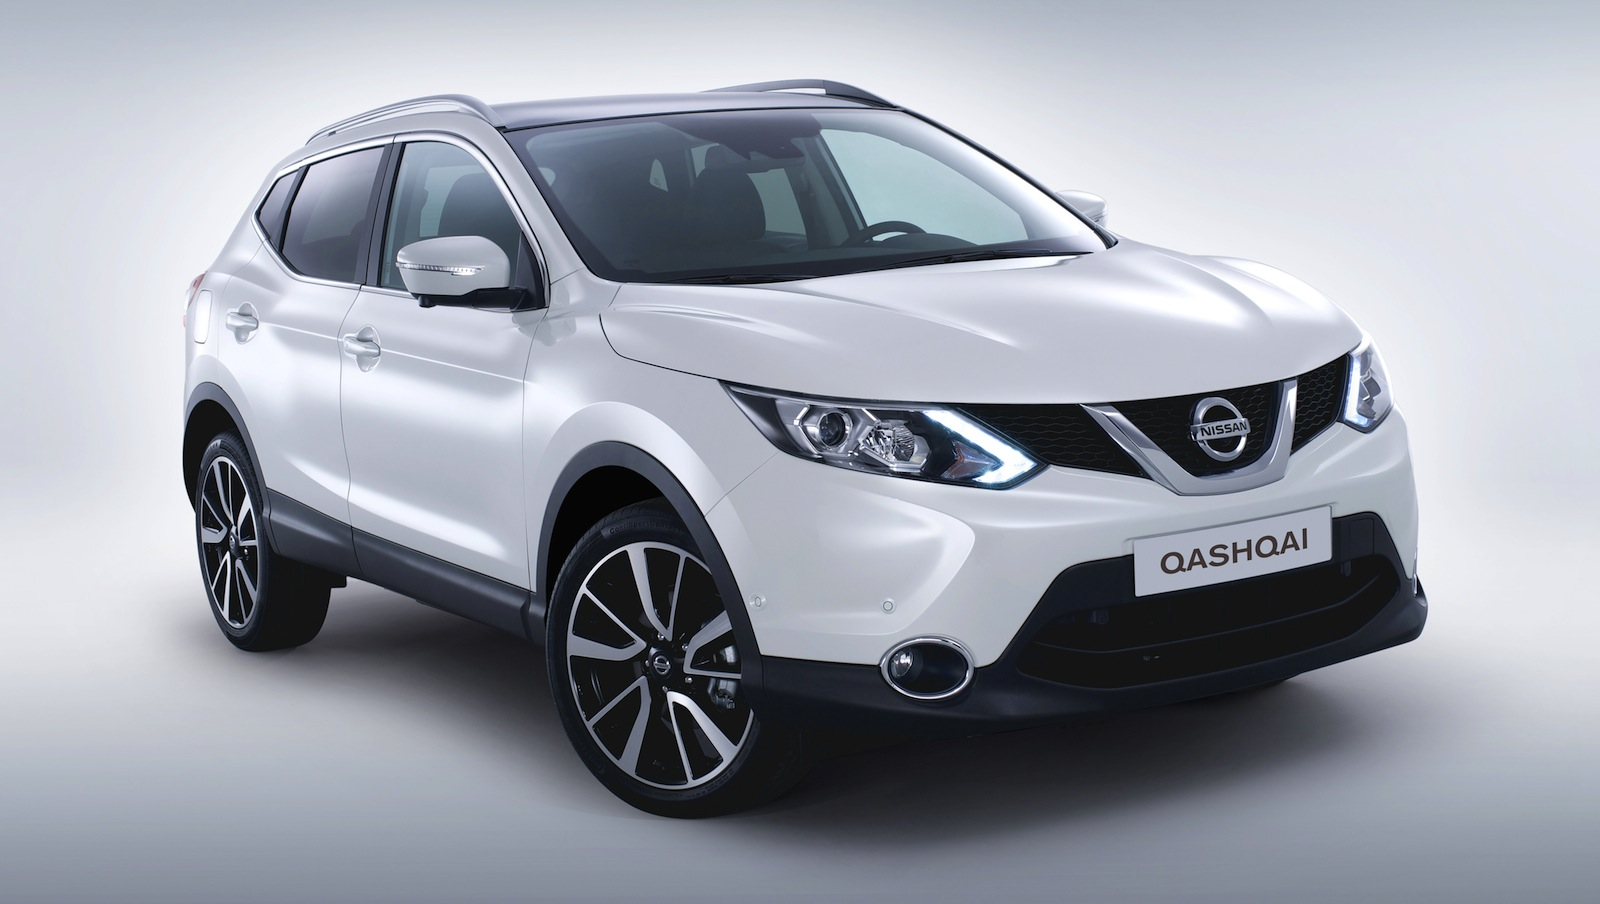 nissan qashqai pricing and specifications photos 1 of 4. Black Bedroom Furniture Sets. Home Design Ideas